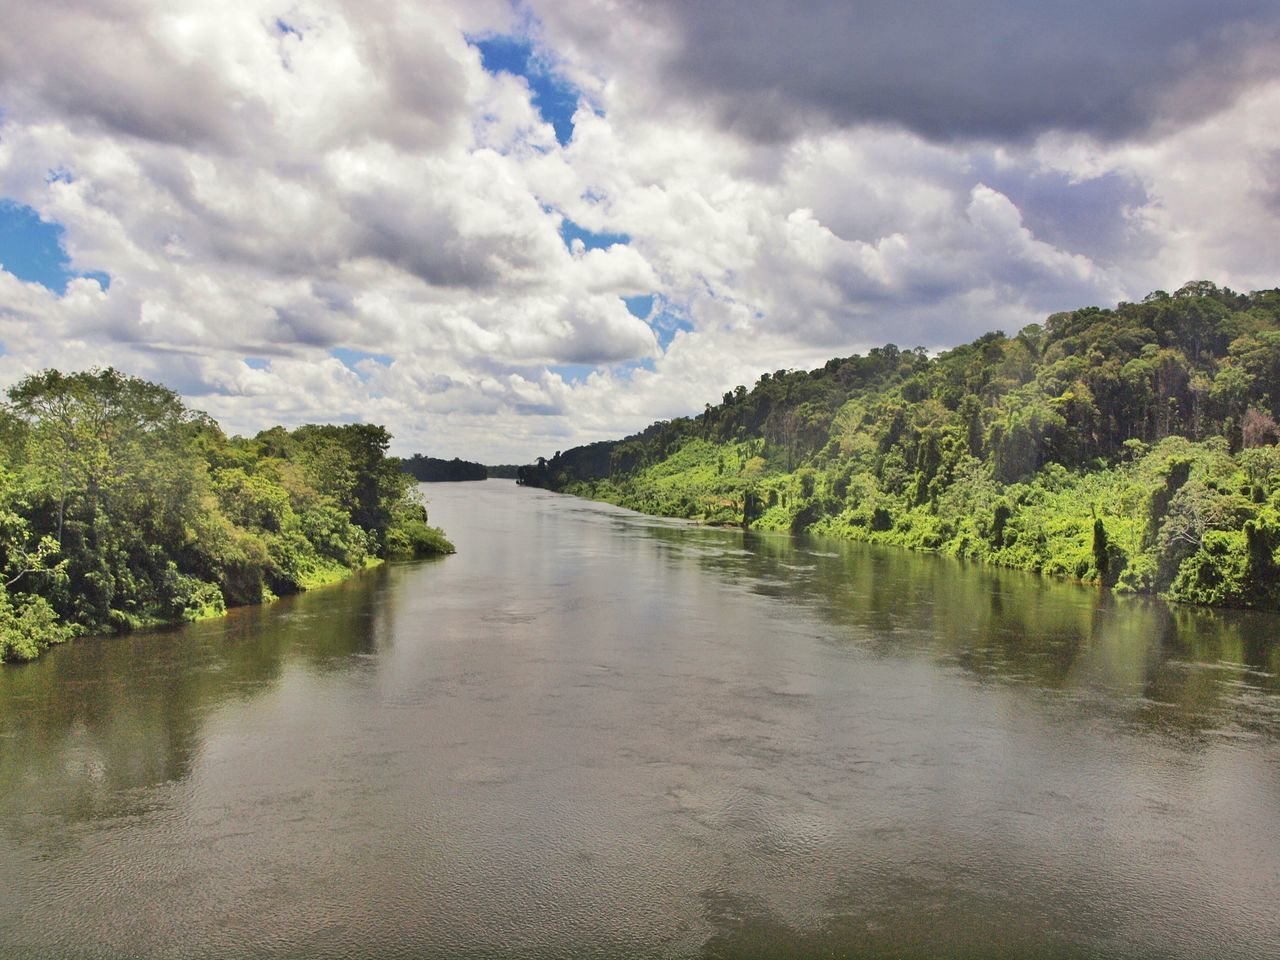 River Jungle River South America Jungle River Jungle Rainforest Suriname Surinam Nature Photography Nature Clouds And Sky